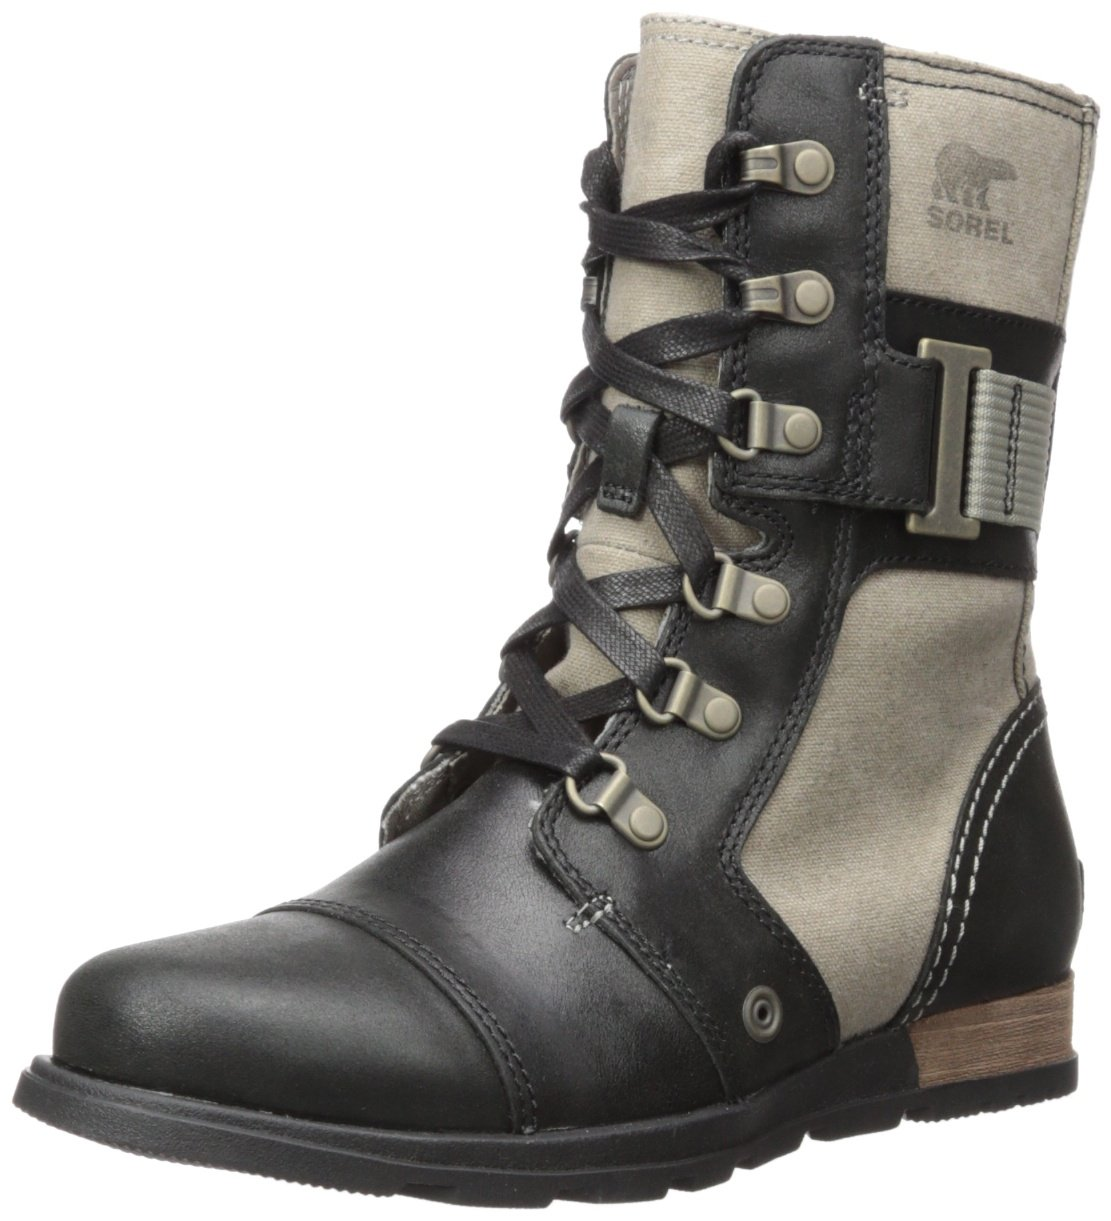 Sorel Women's Major Carly Snow Boot, Wet Sand, Black, 6 B US